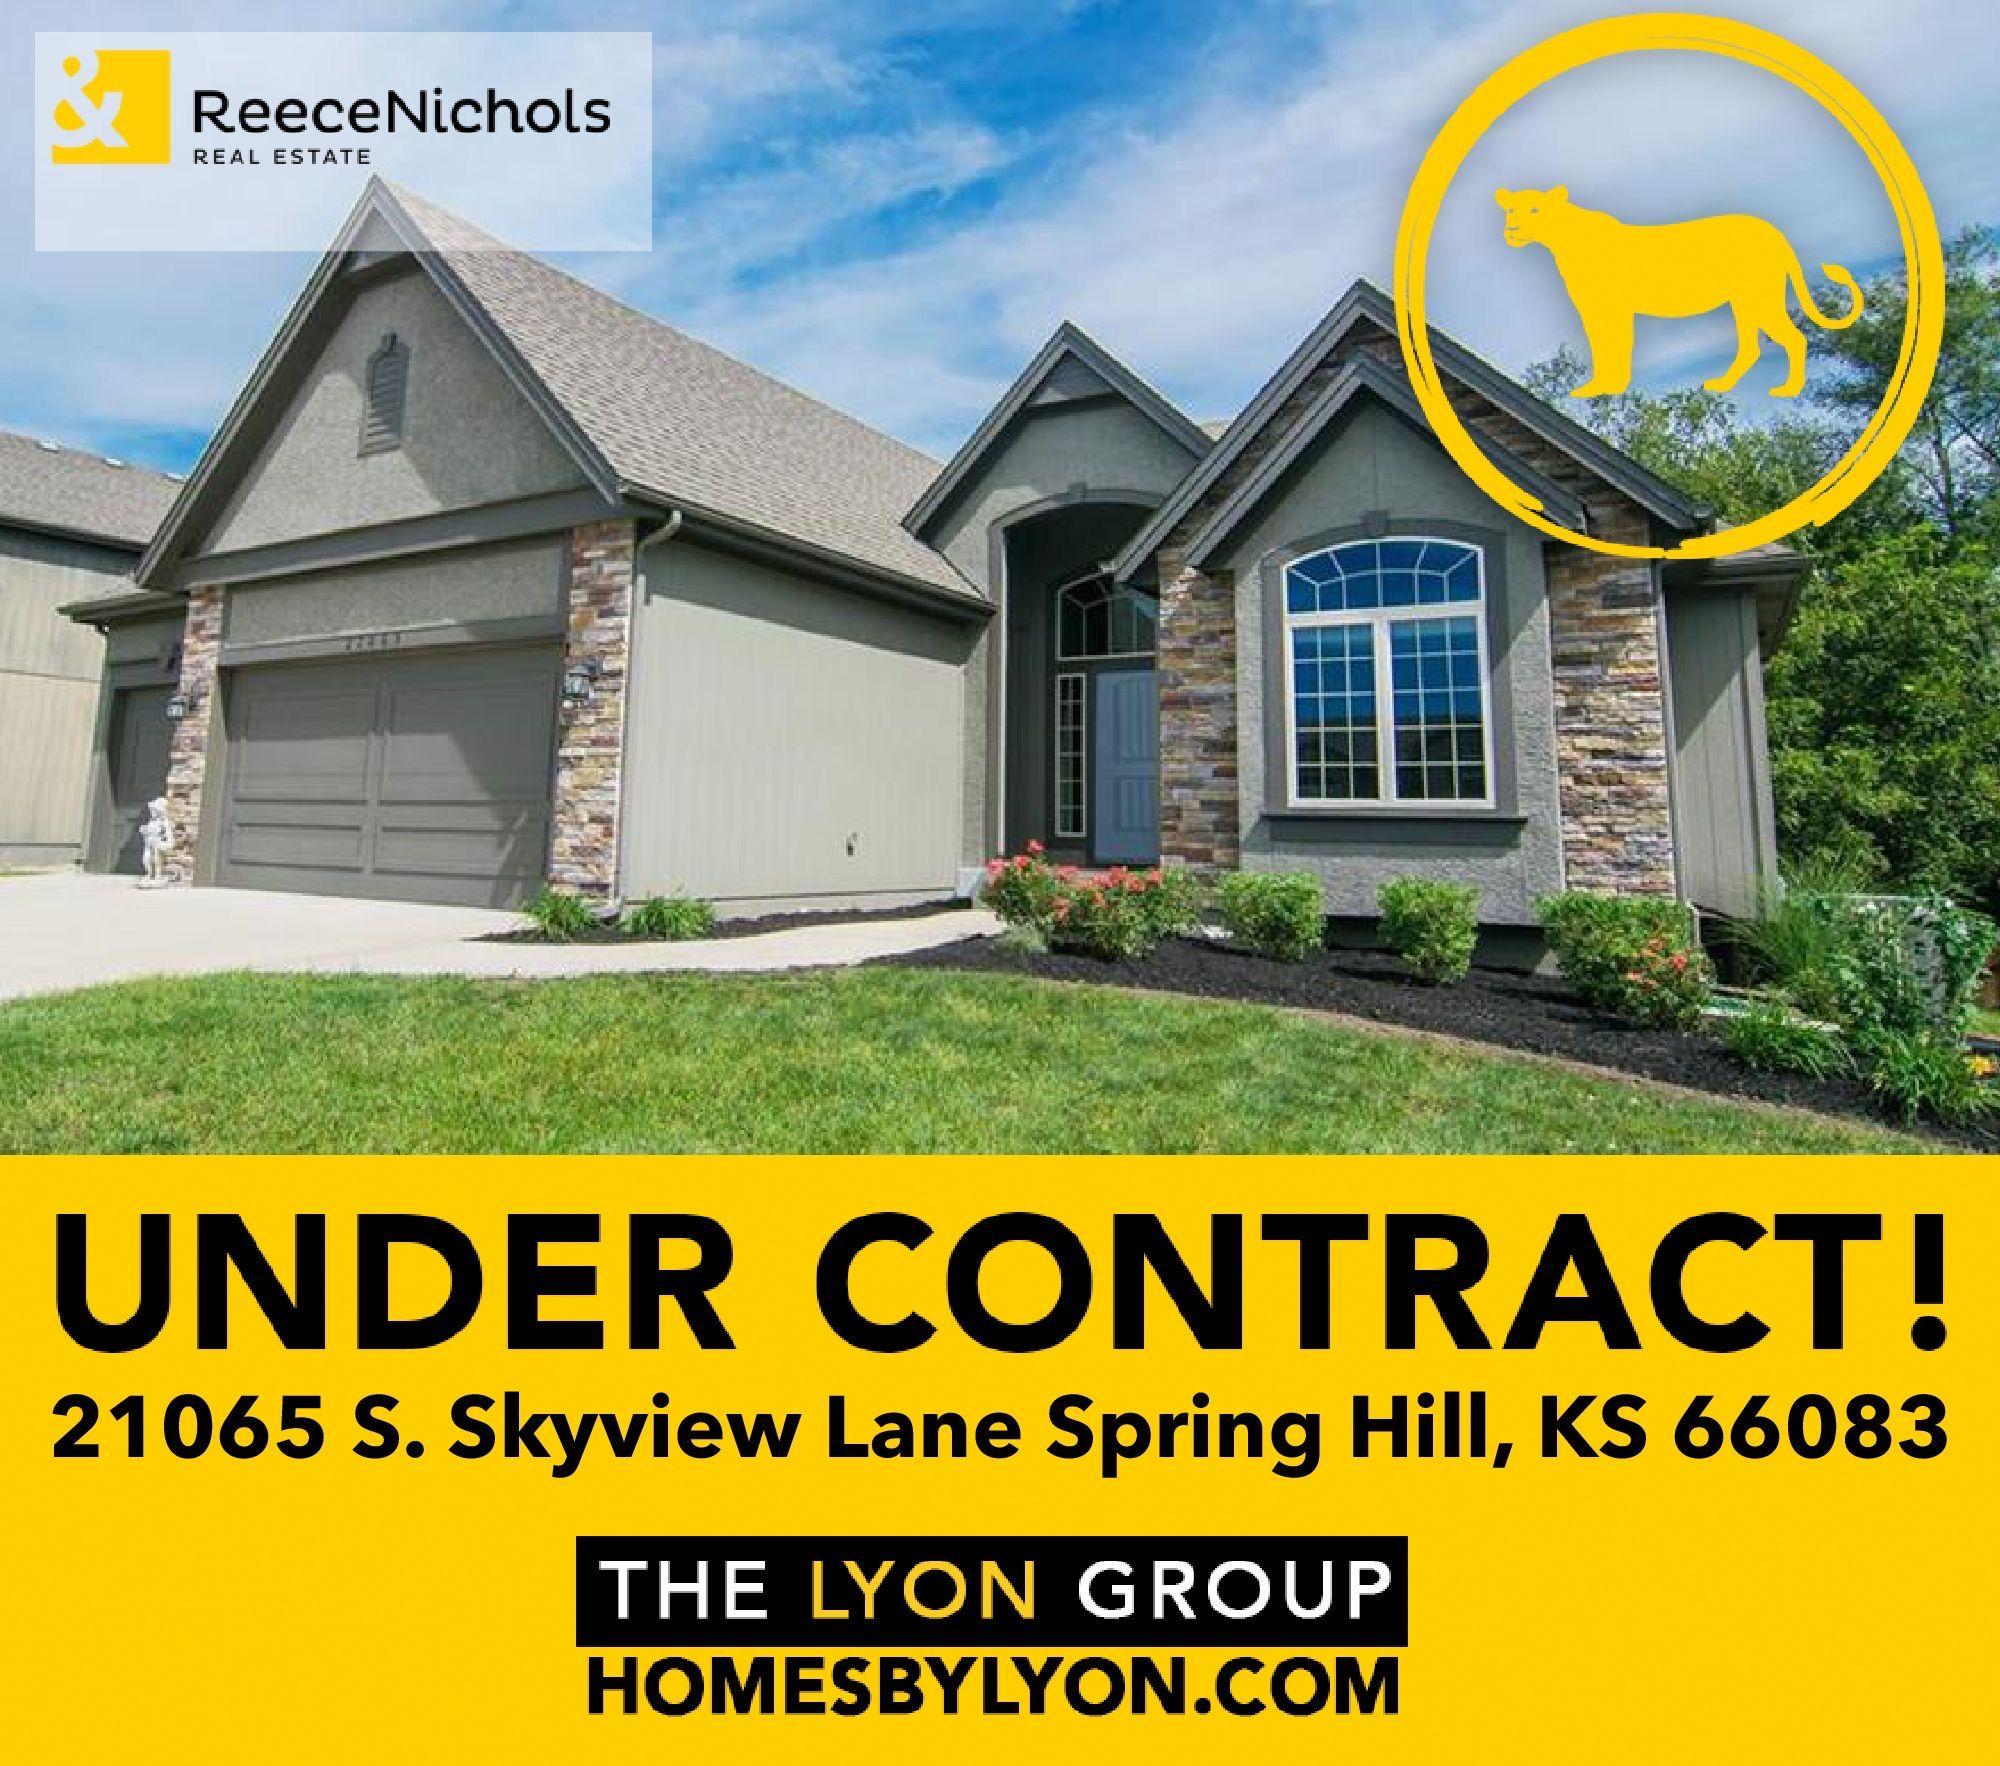 Under Contract 21065 S Skyview Lane Spring Hill Ks 66083 We Are Thrilled For Our Happy Seller Congrats Sandy In 2020 Spring Hill Springhill Beautiful Homes